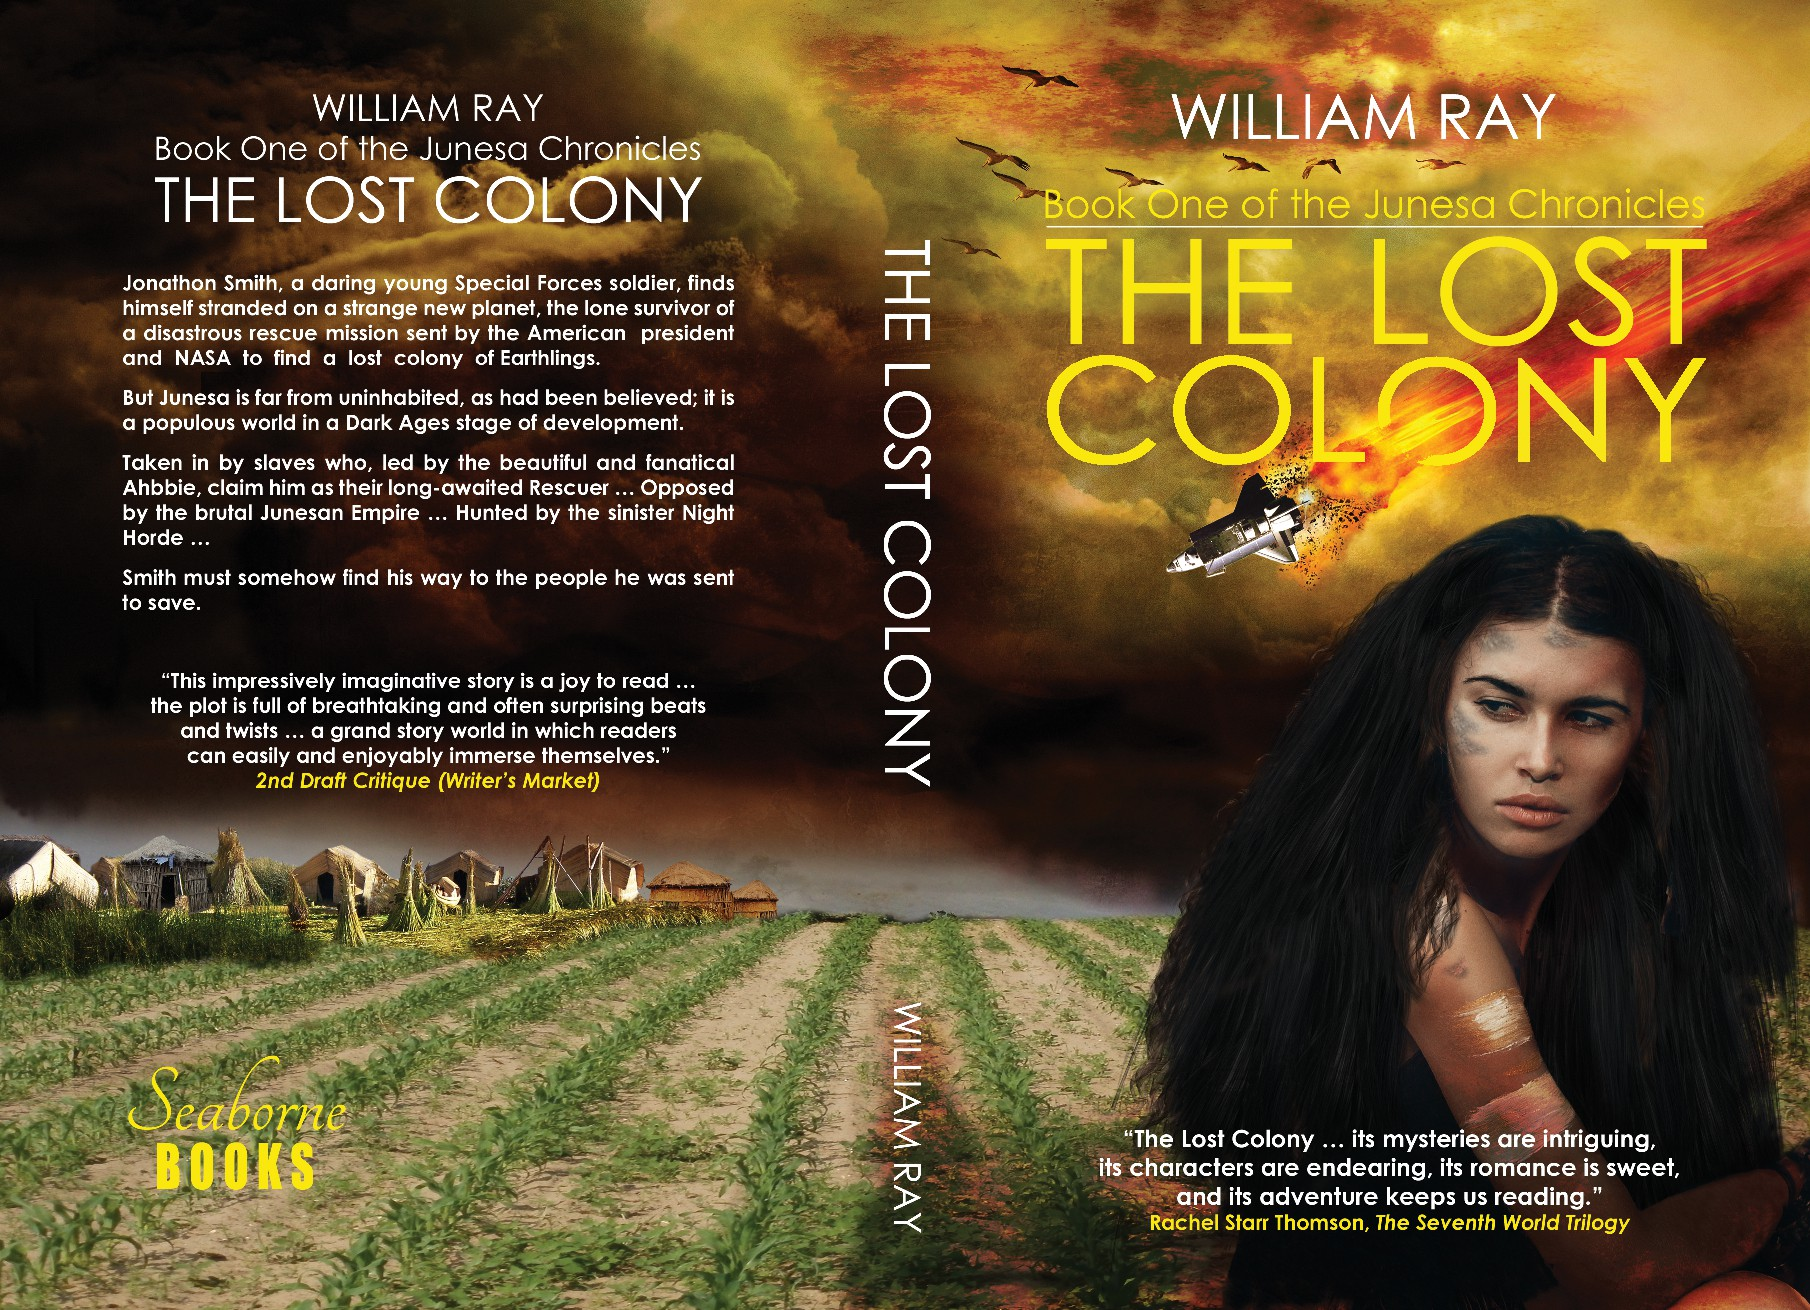 The Lost Colony - book and ebook cover for science fiction novel